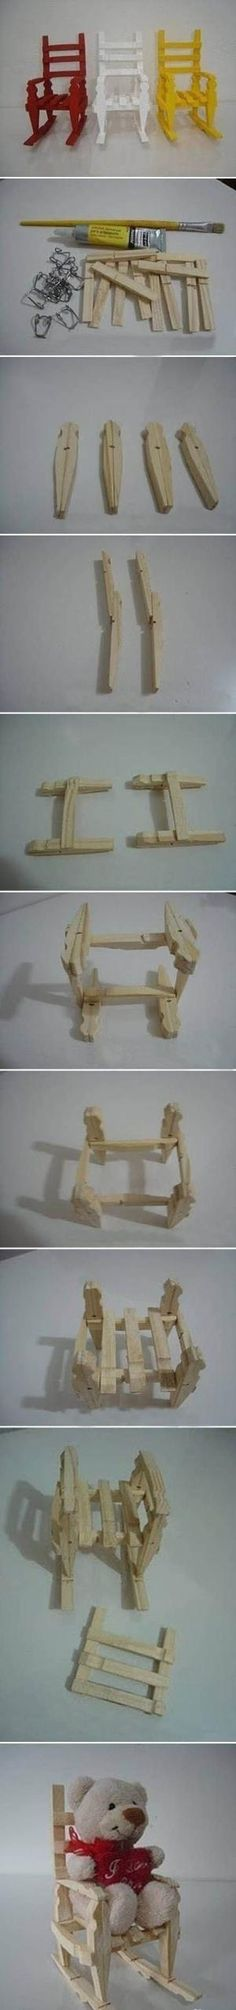 Ideas Clothes Pin Crafts For Kids Toys Kids Crafts, Diy And Crafts, Craft Projects, Arts And Crafts, Popsicle Stick Crafts, Craft Stick Crafts, Wood Crafts, Clothespin Crafts, Popsicle Sticks